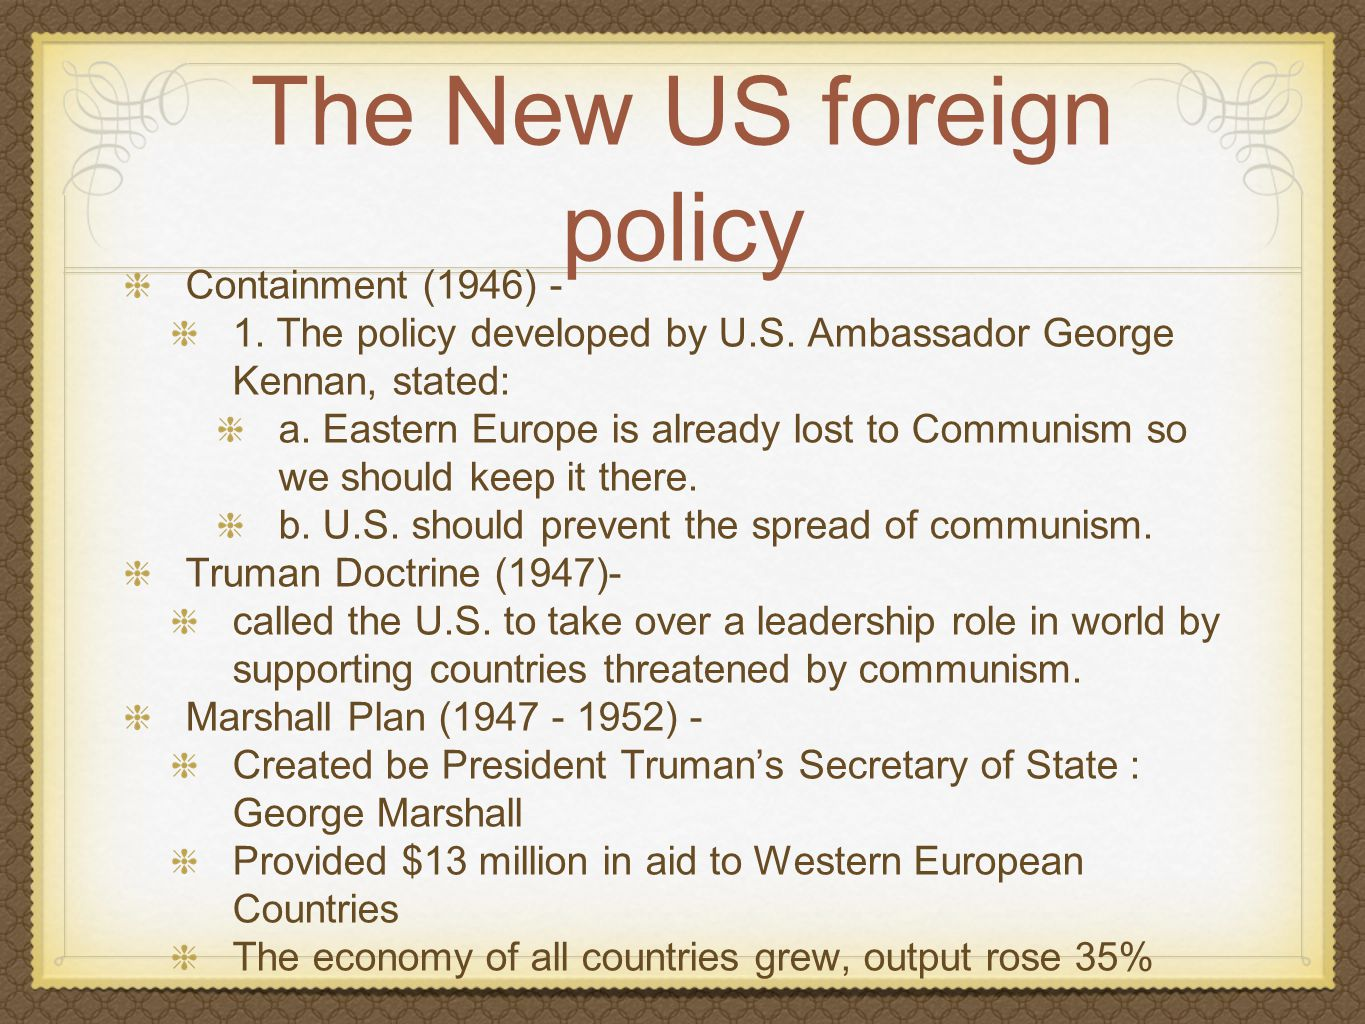 The New US foreign policy Containment (1946) - 1. The policy developed by U.S. Ambassador George Kennan, stated: a. Eastern Europe is already lost to